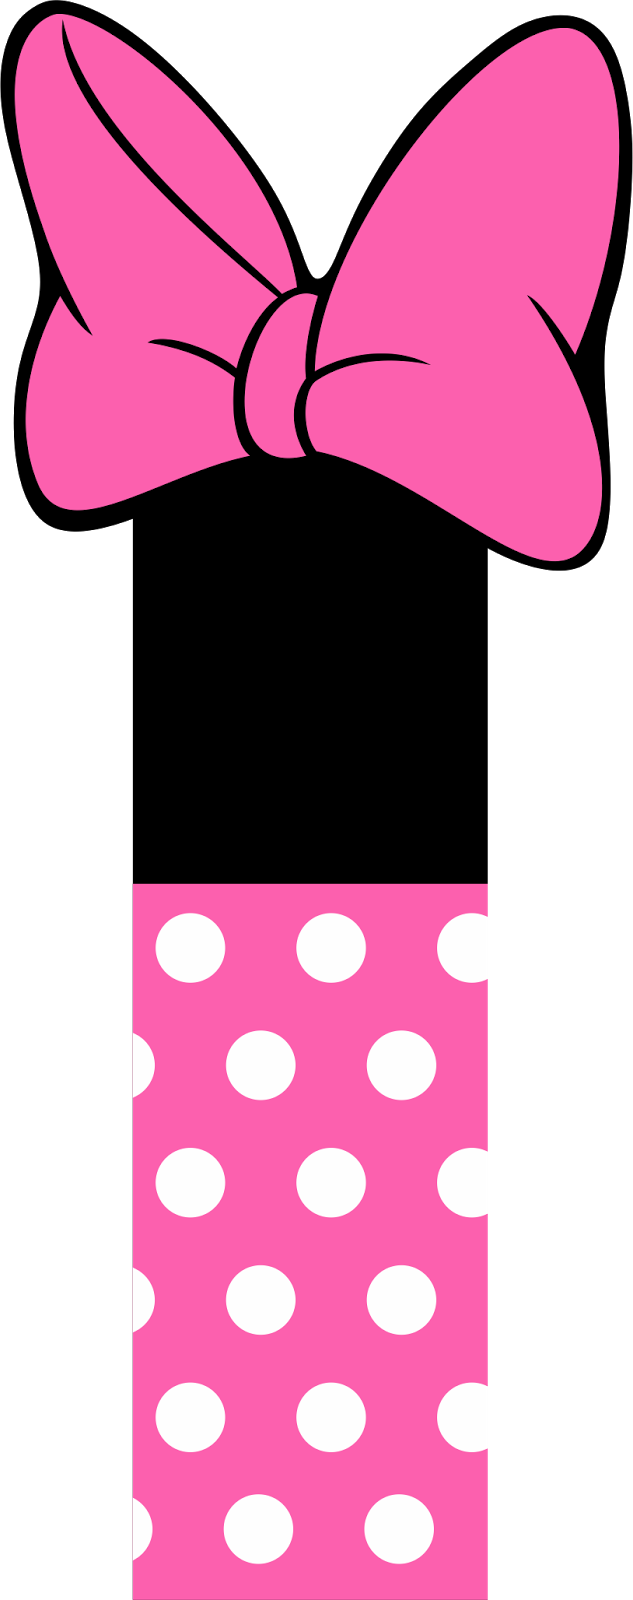 Pin By Minerva Cruz On M Pinterest Birthday Minnie Mouse Party Austin Slip Pink And Decorations